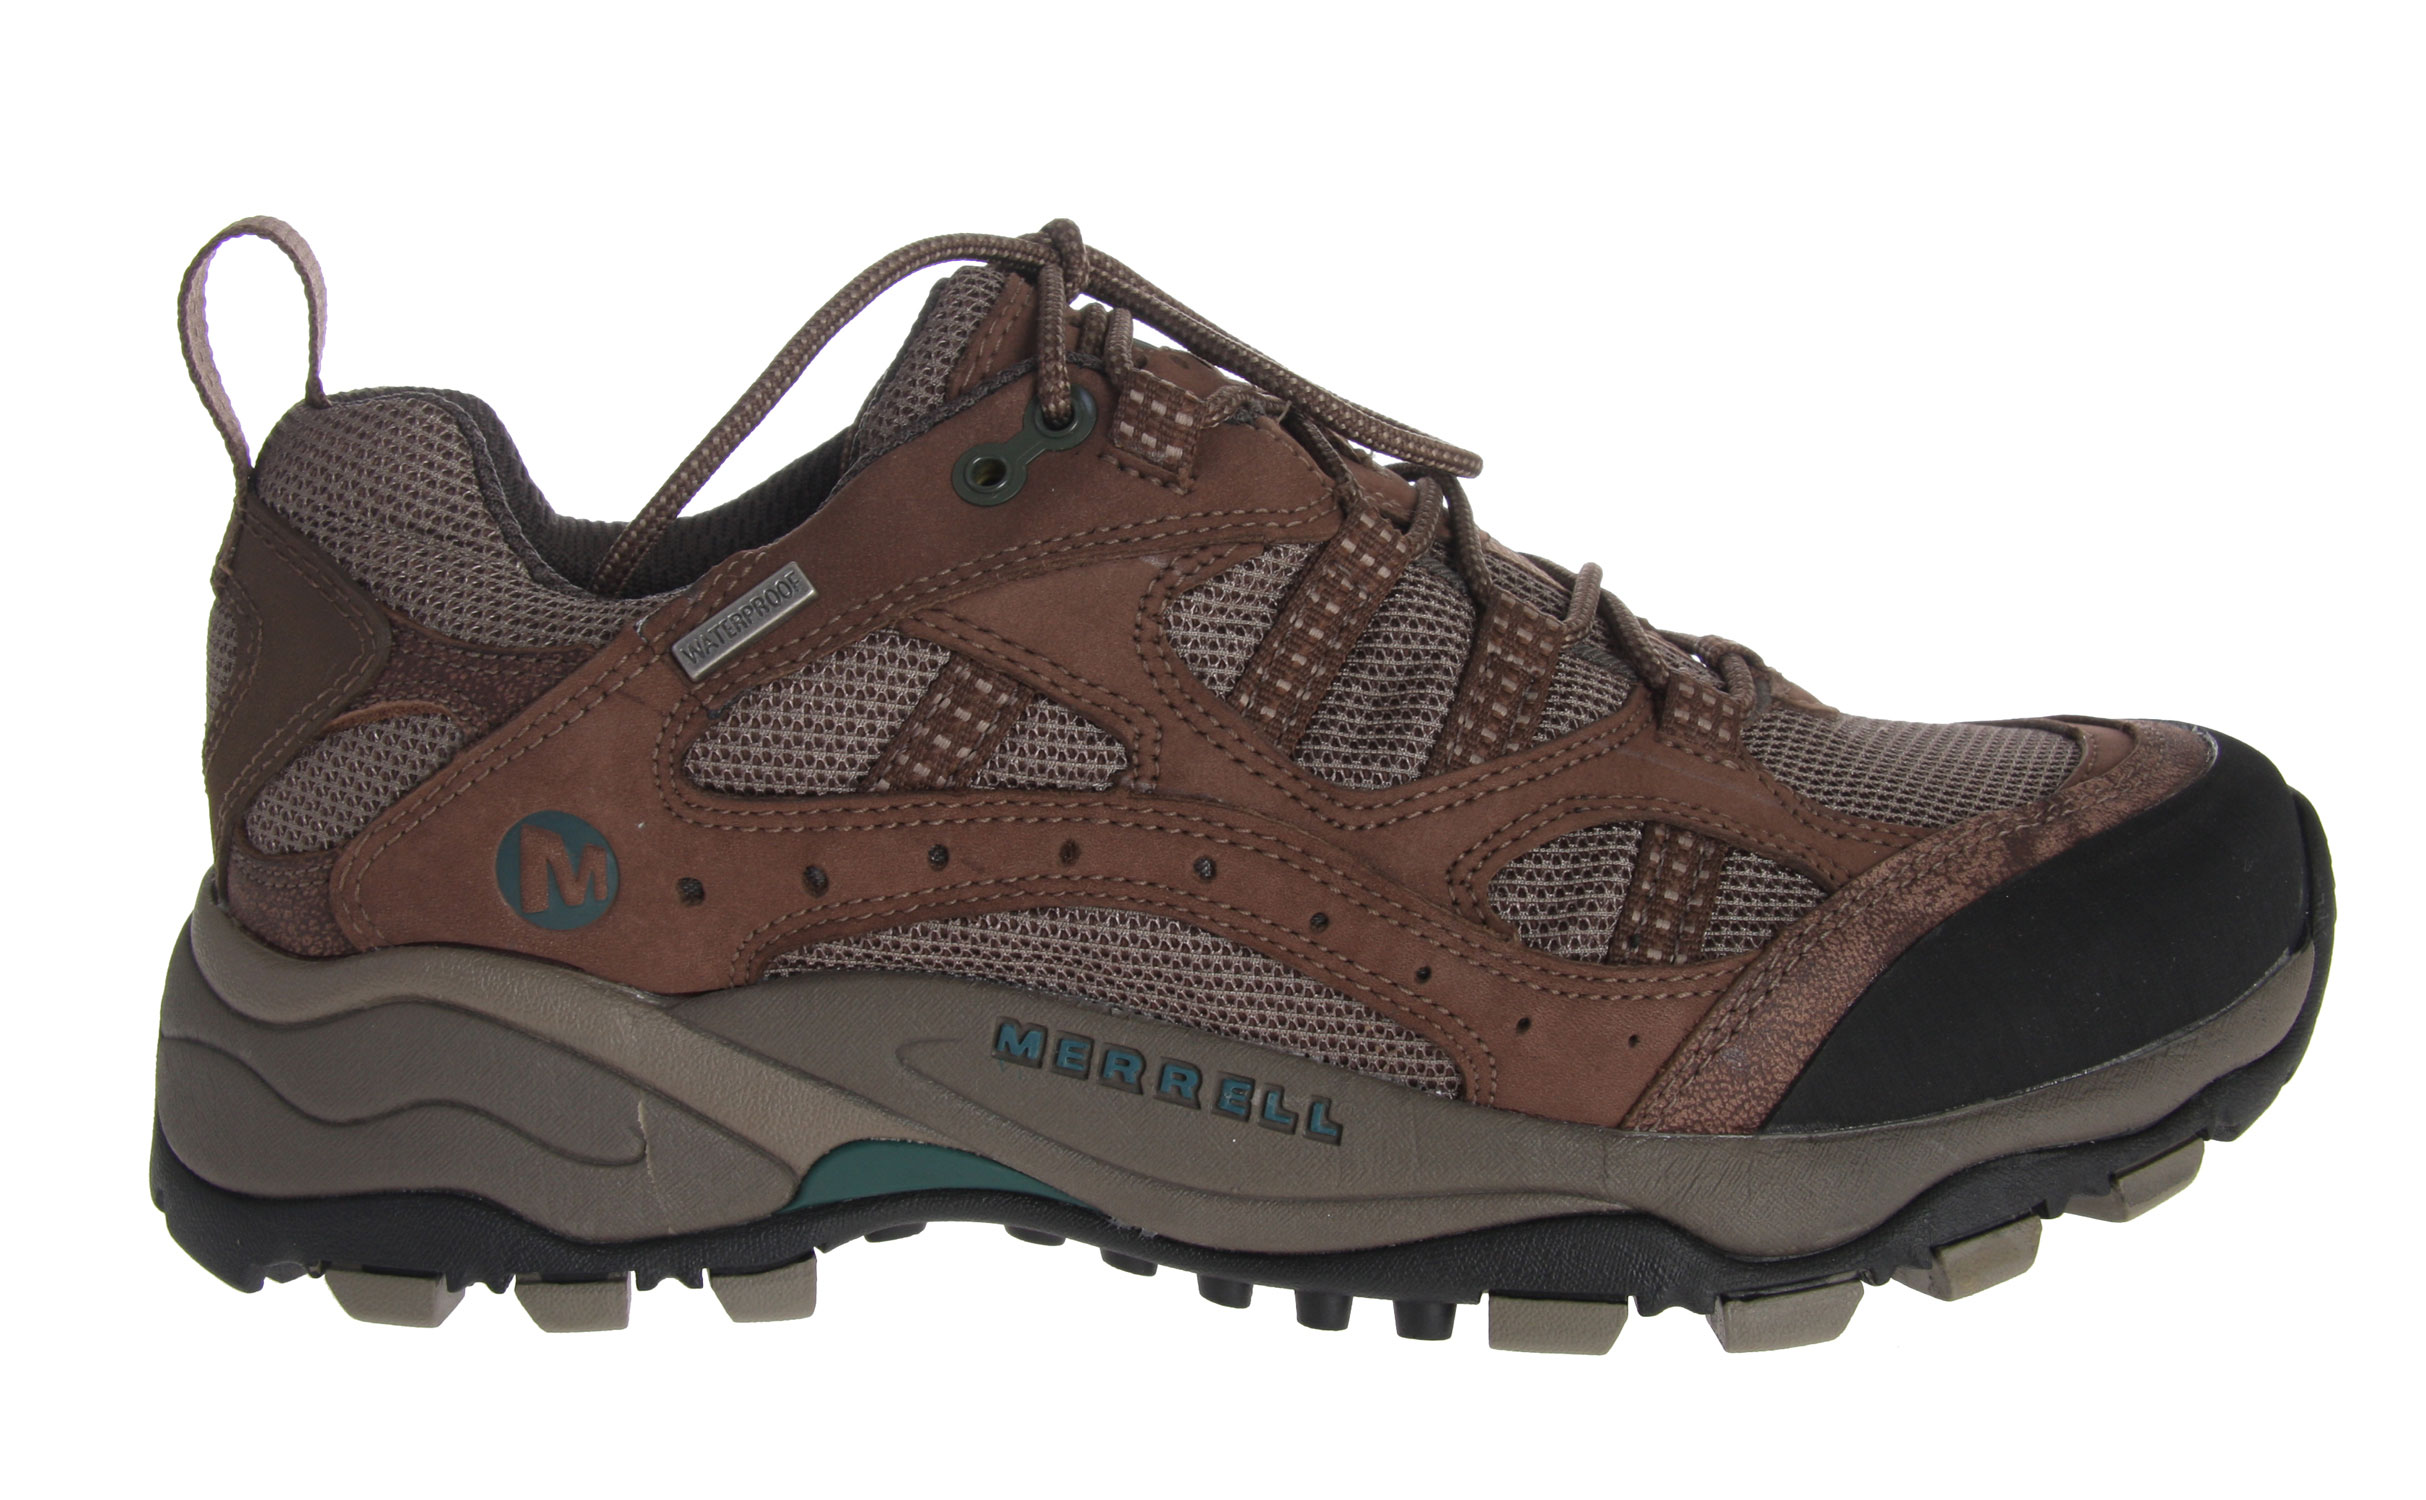 Camp and Hike The beauty and breathable ease of this waterproof trail finder, combined with a rock-solid wider platform and stride-supportive QForm comfort, will keep your feet dry and your spirits high in the mountains. A combination upper for keeping moisture and random rocks out, and a durable, recycled PU footbed ensure the trip goes smoothly from the trailhead to the top.Key Features of the Merrell Pandora Ventilator Hiking Shoes: Strobel construction offers flexibility and comfort Nubuck leather and mesh upper Bellows tongue keeps debris out Abrasion resistant toe cap Waterproof Membrane treated with an antimicrobial solution provides impermeable but breathable barrier Breathable mesh lining treated with an antimicrobial solution maintains foot comfort Recycled Poliyou footbed with active carbon to control moisture and ensures breathability Molded nylon arch shank QForm Comfort midsole provides women's specific stride-sequenced cushioning Merrell Air Cushion in the heel absorbs shock and adds stability 5.0mm sole lug depth Vibram Pandora Sole/TC5+ Rubber - $69.95